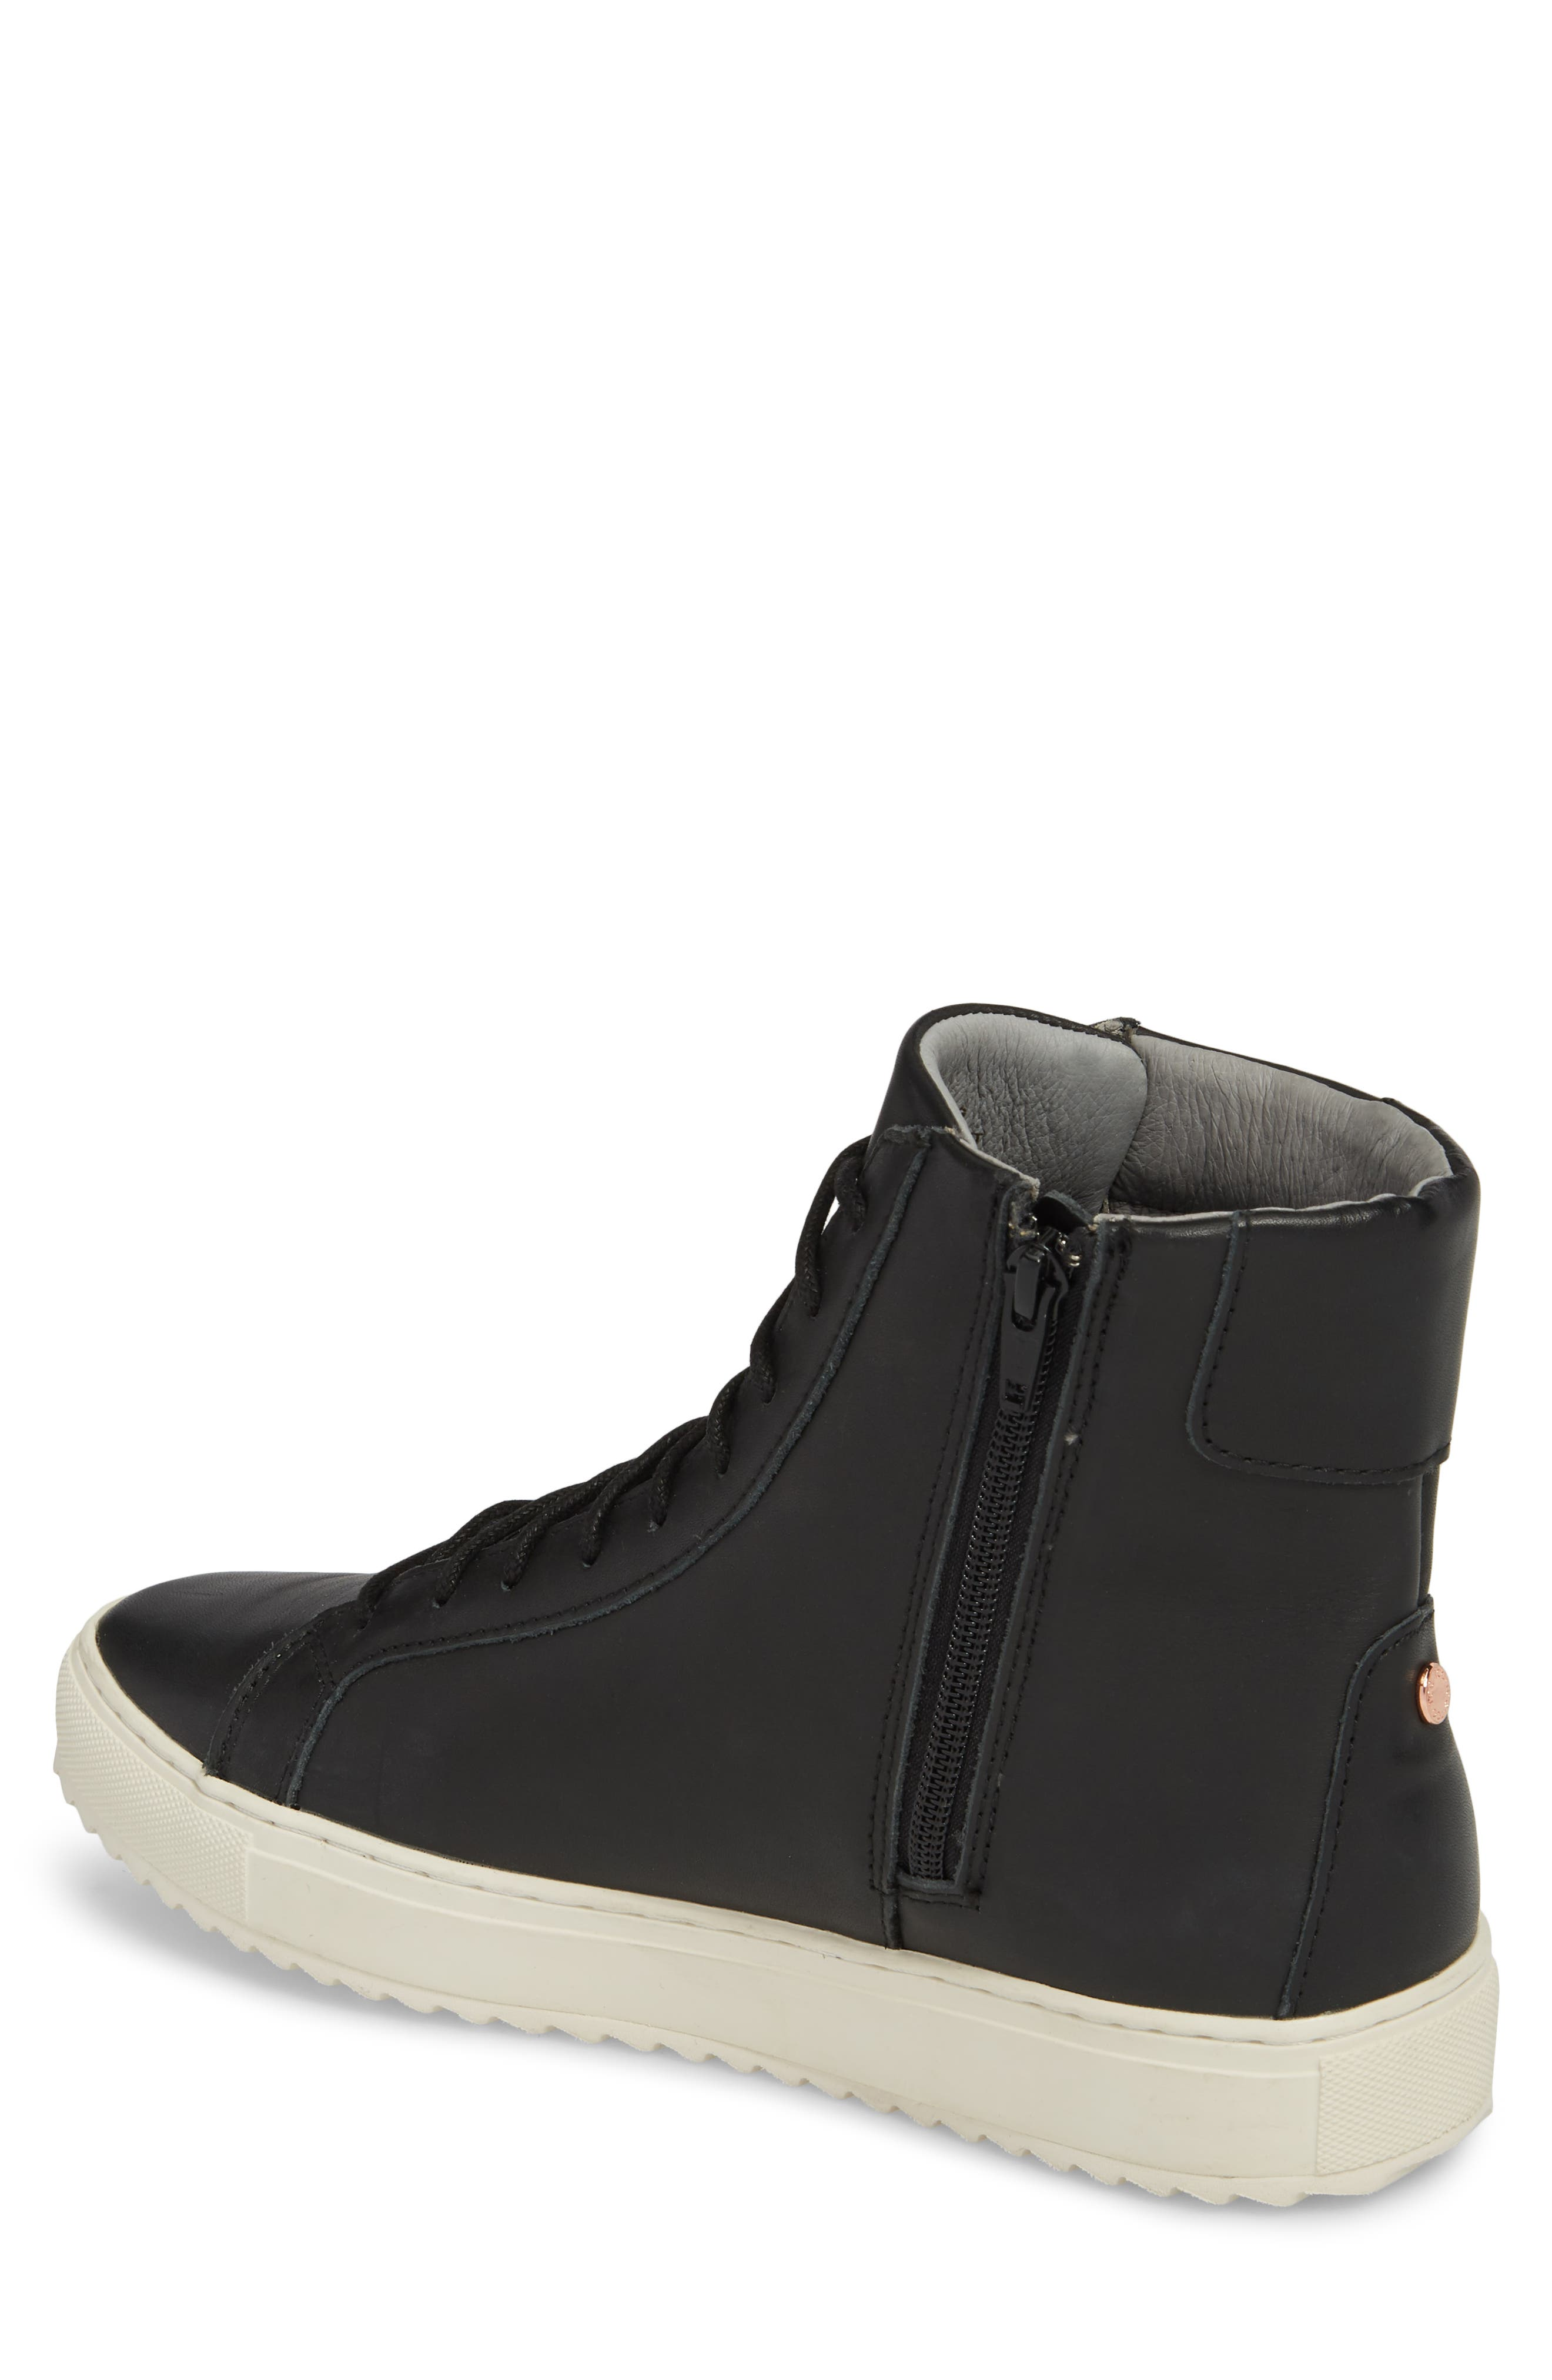 Logan Water Resistant High Top Sneaker,                             Alternate thumbnail 2, color,                             Kettle Leather